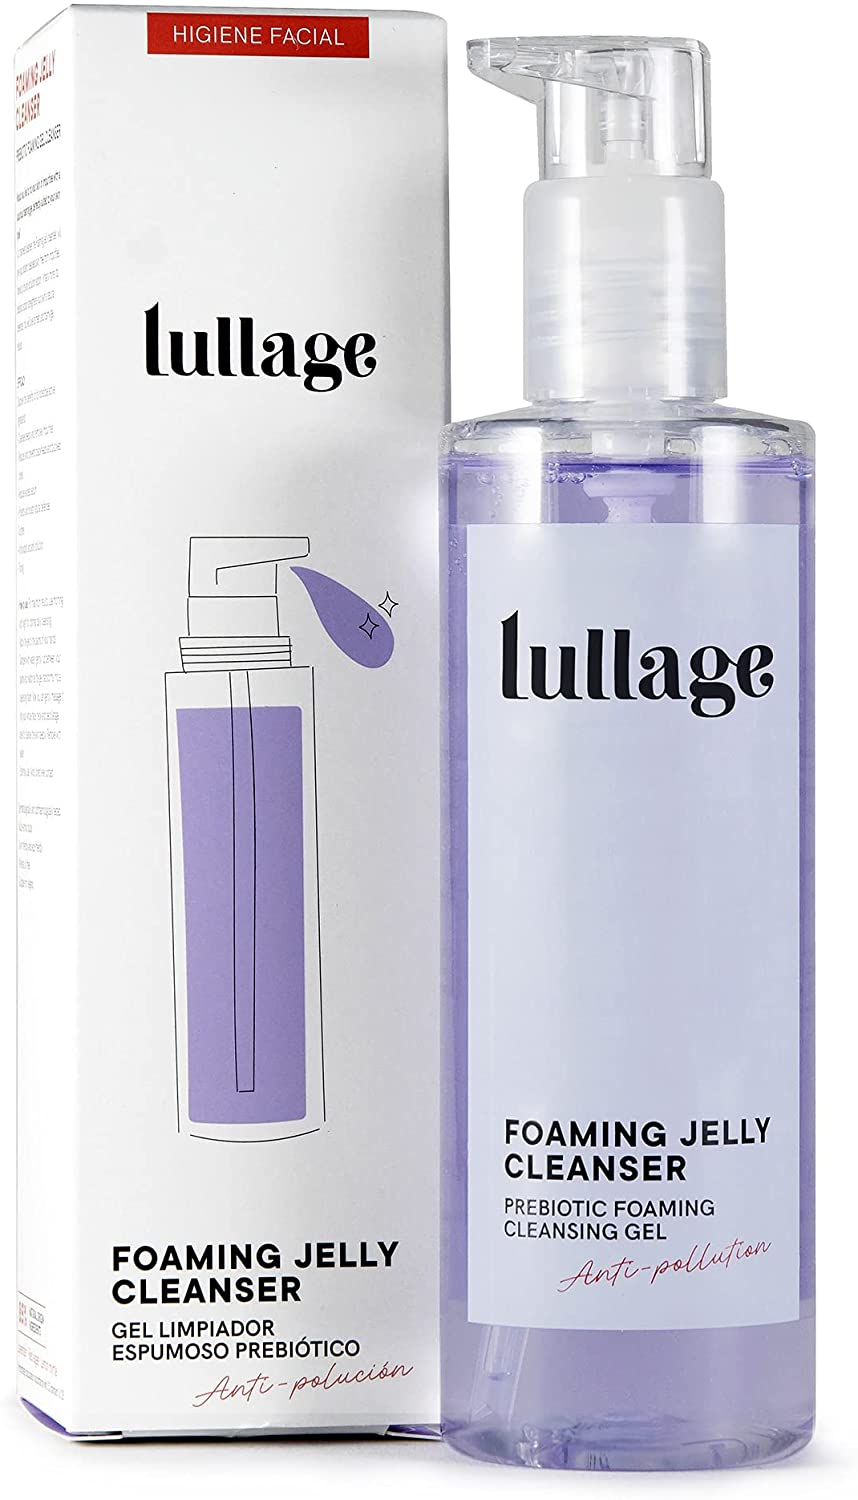 limpiador-facial-lullage-foaming-jelly-cleanser.jpg